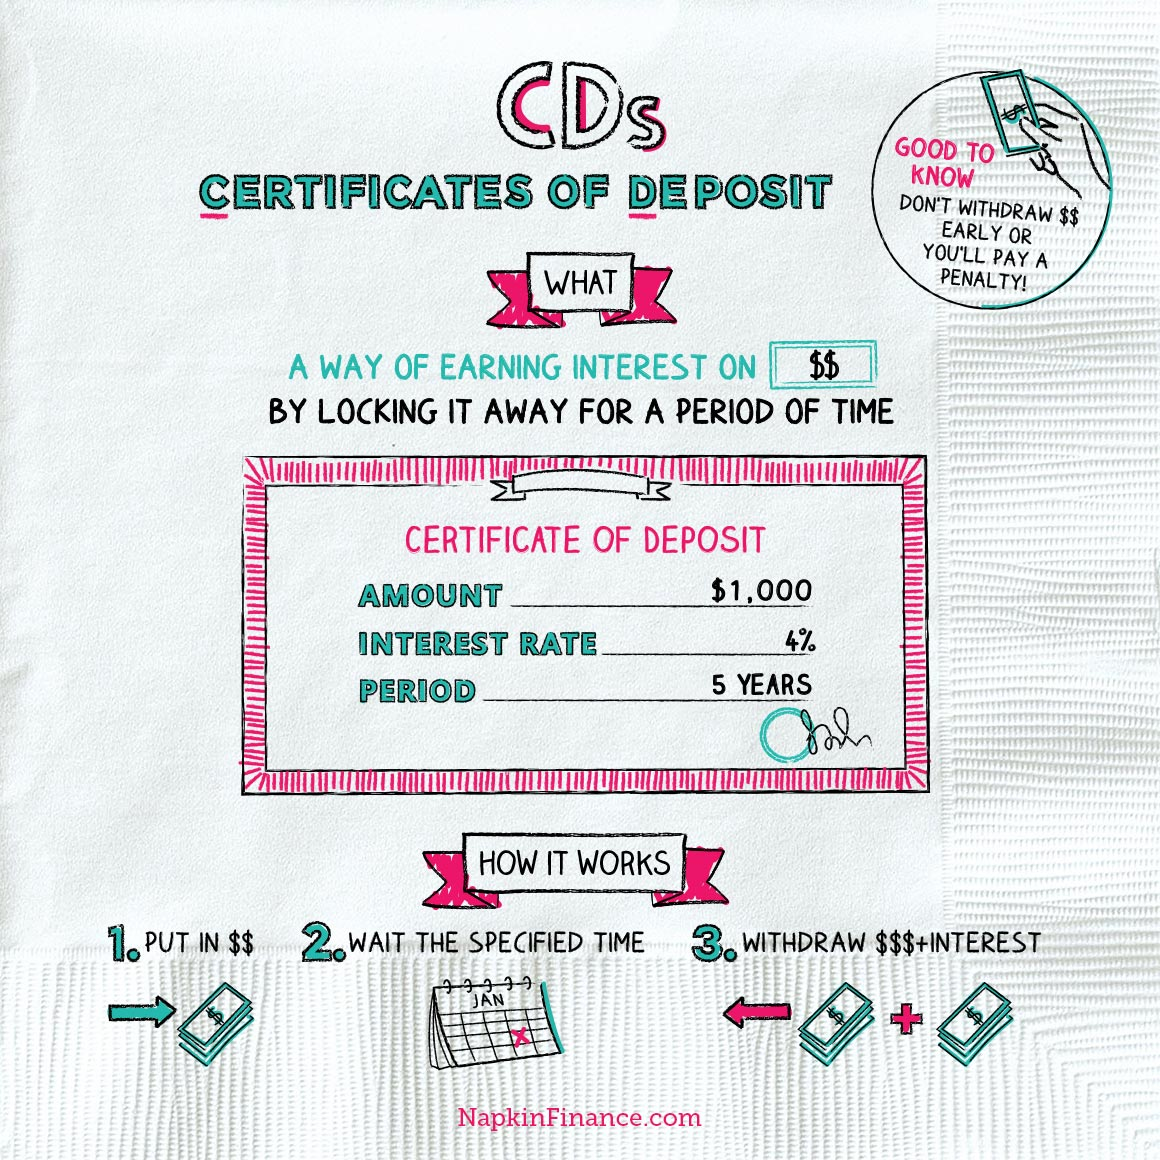 What is a CD? (Certificate of Deposit) Napkin Finance has